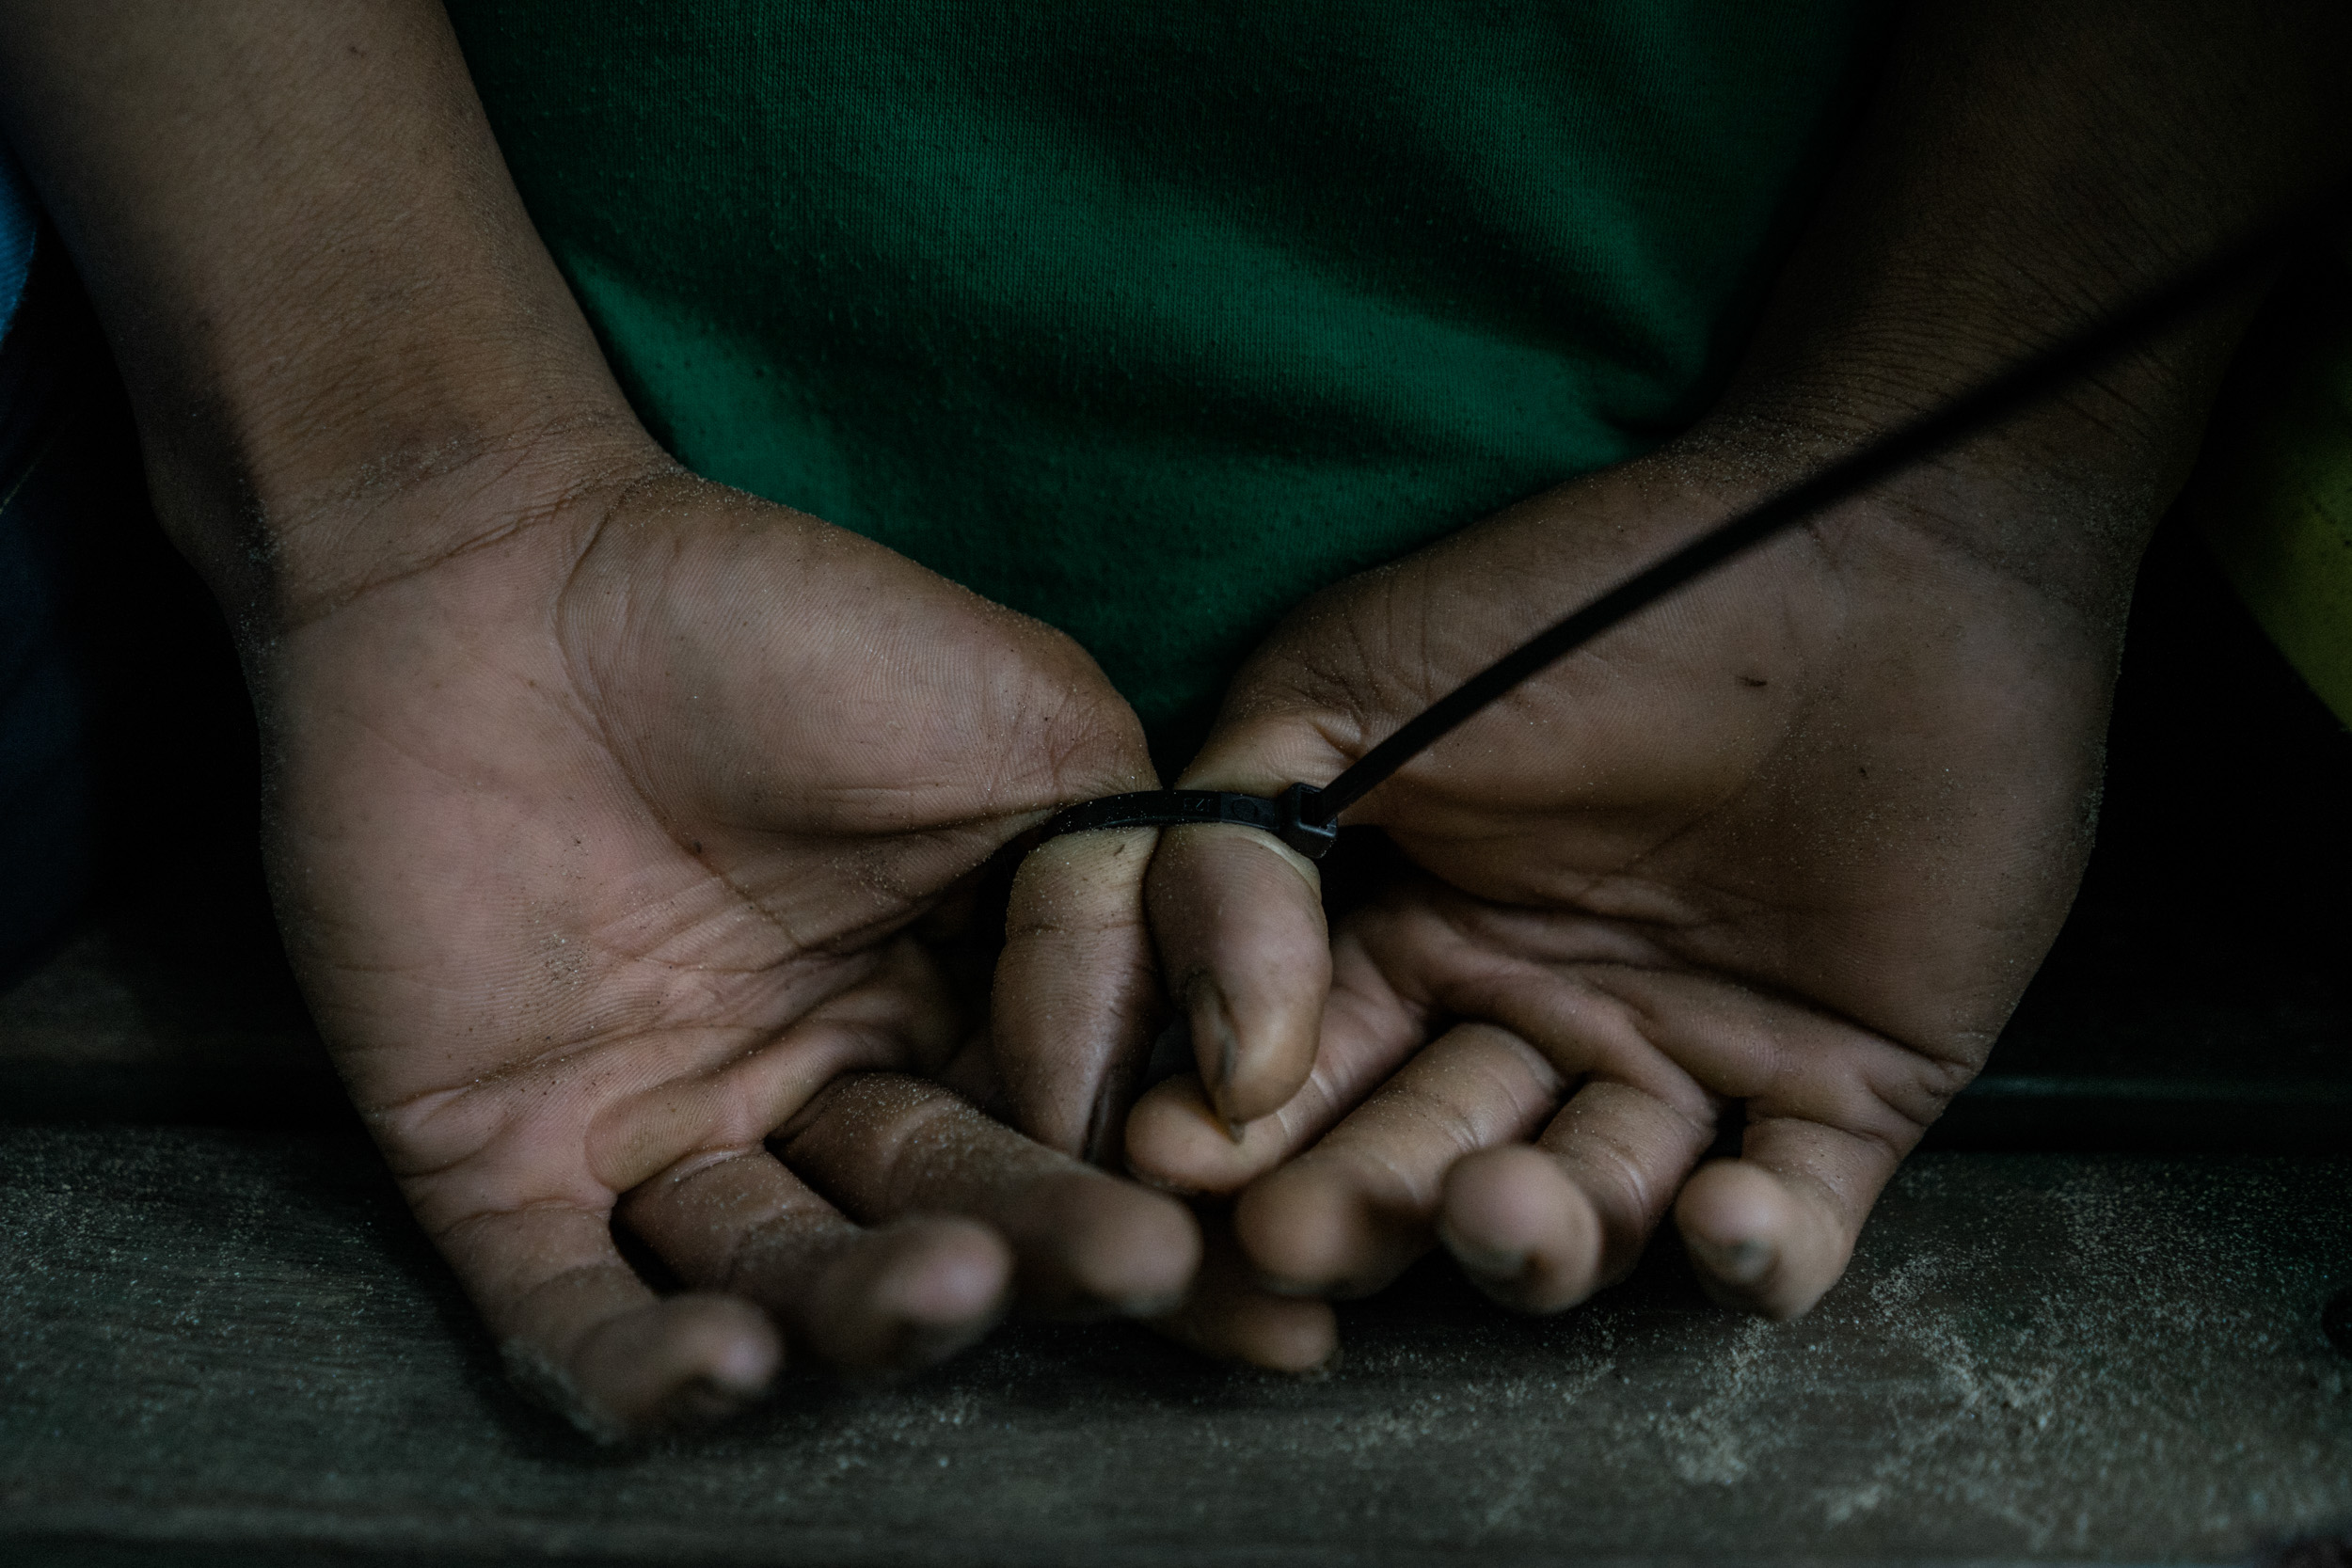 Hands of a man are seen tied up after his arrest. The man is part of a group suspected of dealing drugs and supplying the ISIS inspired Bangsamoro Islamic Freedom Fighters with weaponry. He was arrested in an operation by a Philippine Army battalion serving in Mindanao, South of the Philippines, and home to the second oldest internal conflict in the world. Mindanao is currently under military rule, or martial law, due to the siege in Marawi and the rise of insurgents pledging to ISIS.